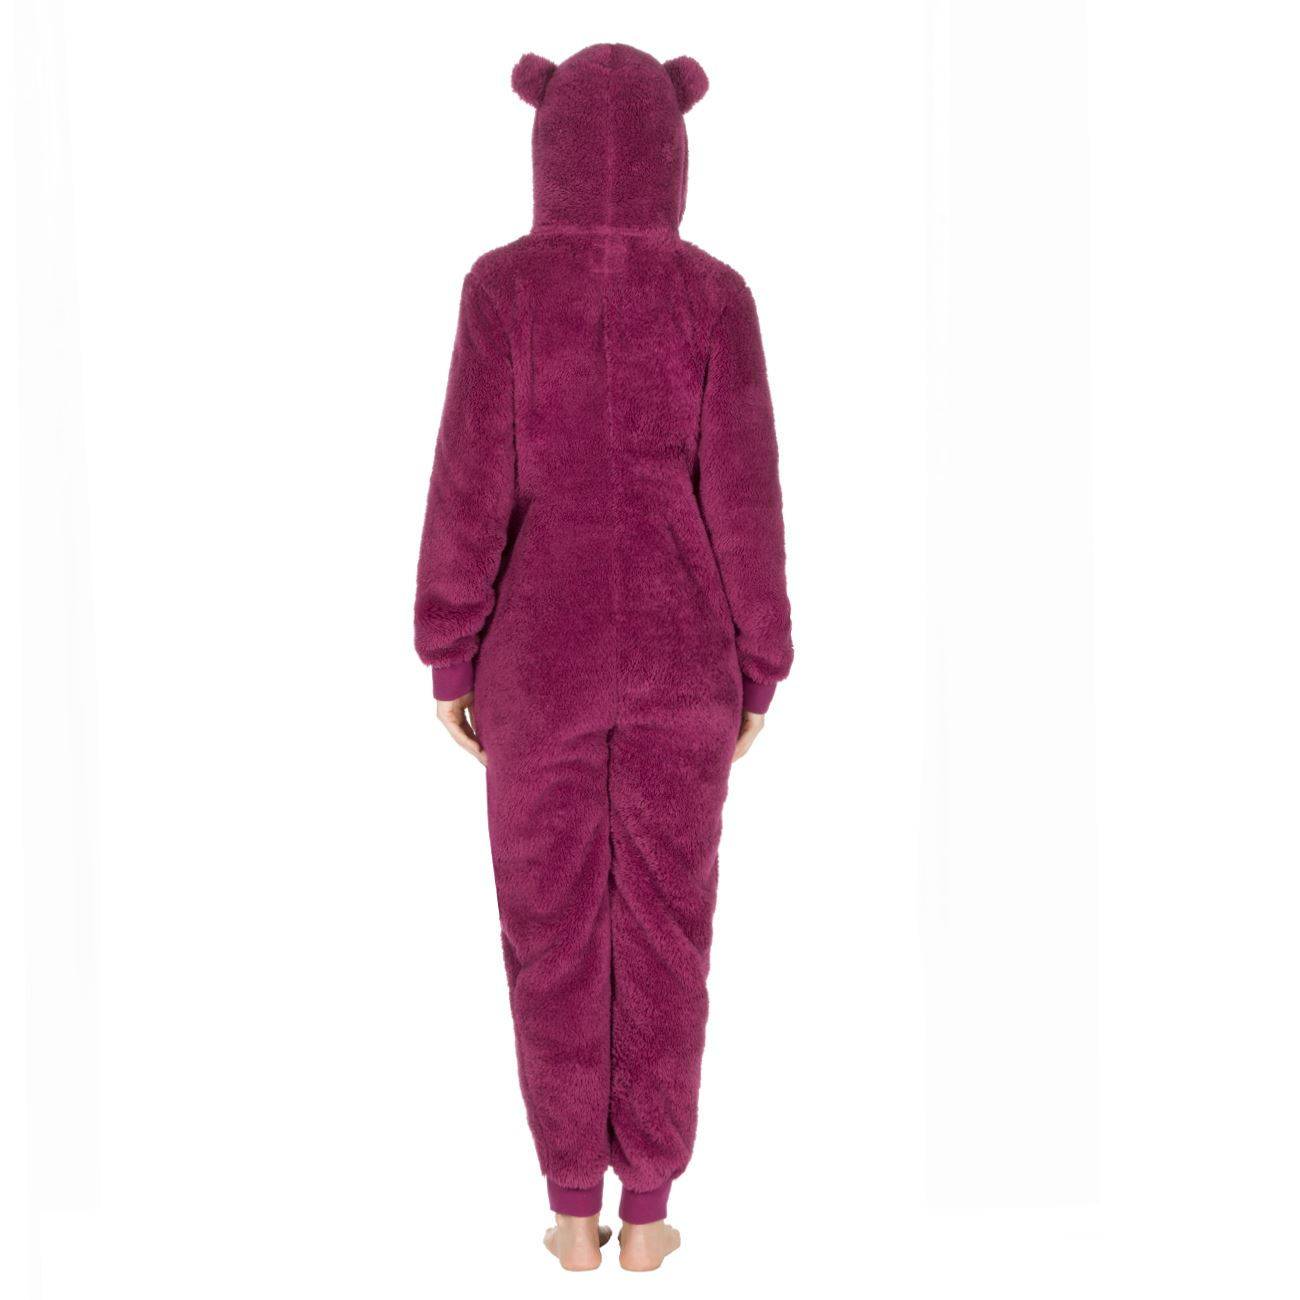 Ladies-Womens-Girls-Fleece-All-In-One-Pyjamas-Outfit-Jumpsuit-Costume-Size-6-18 thumbnail 26